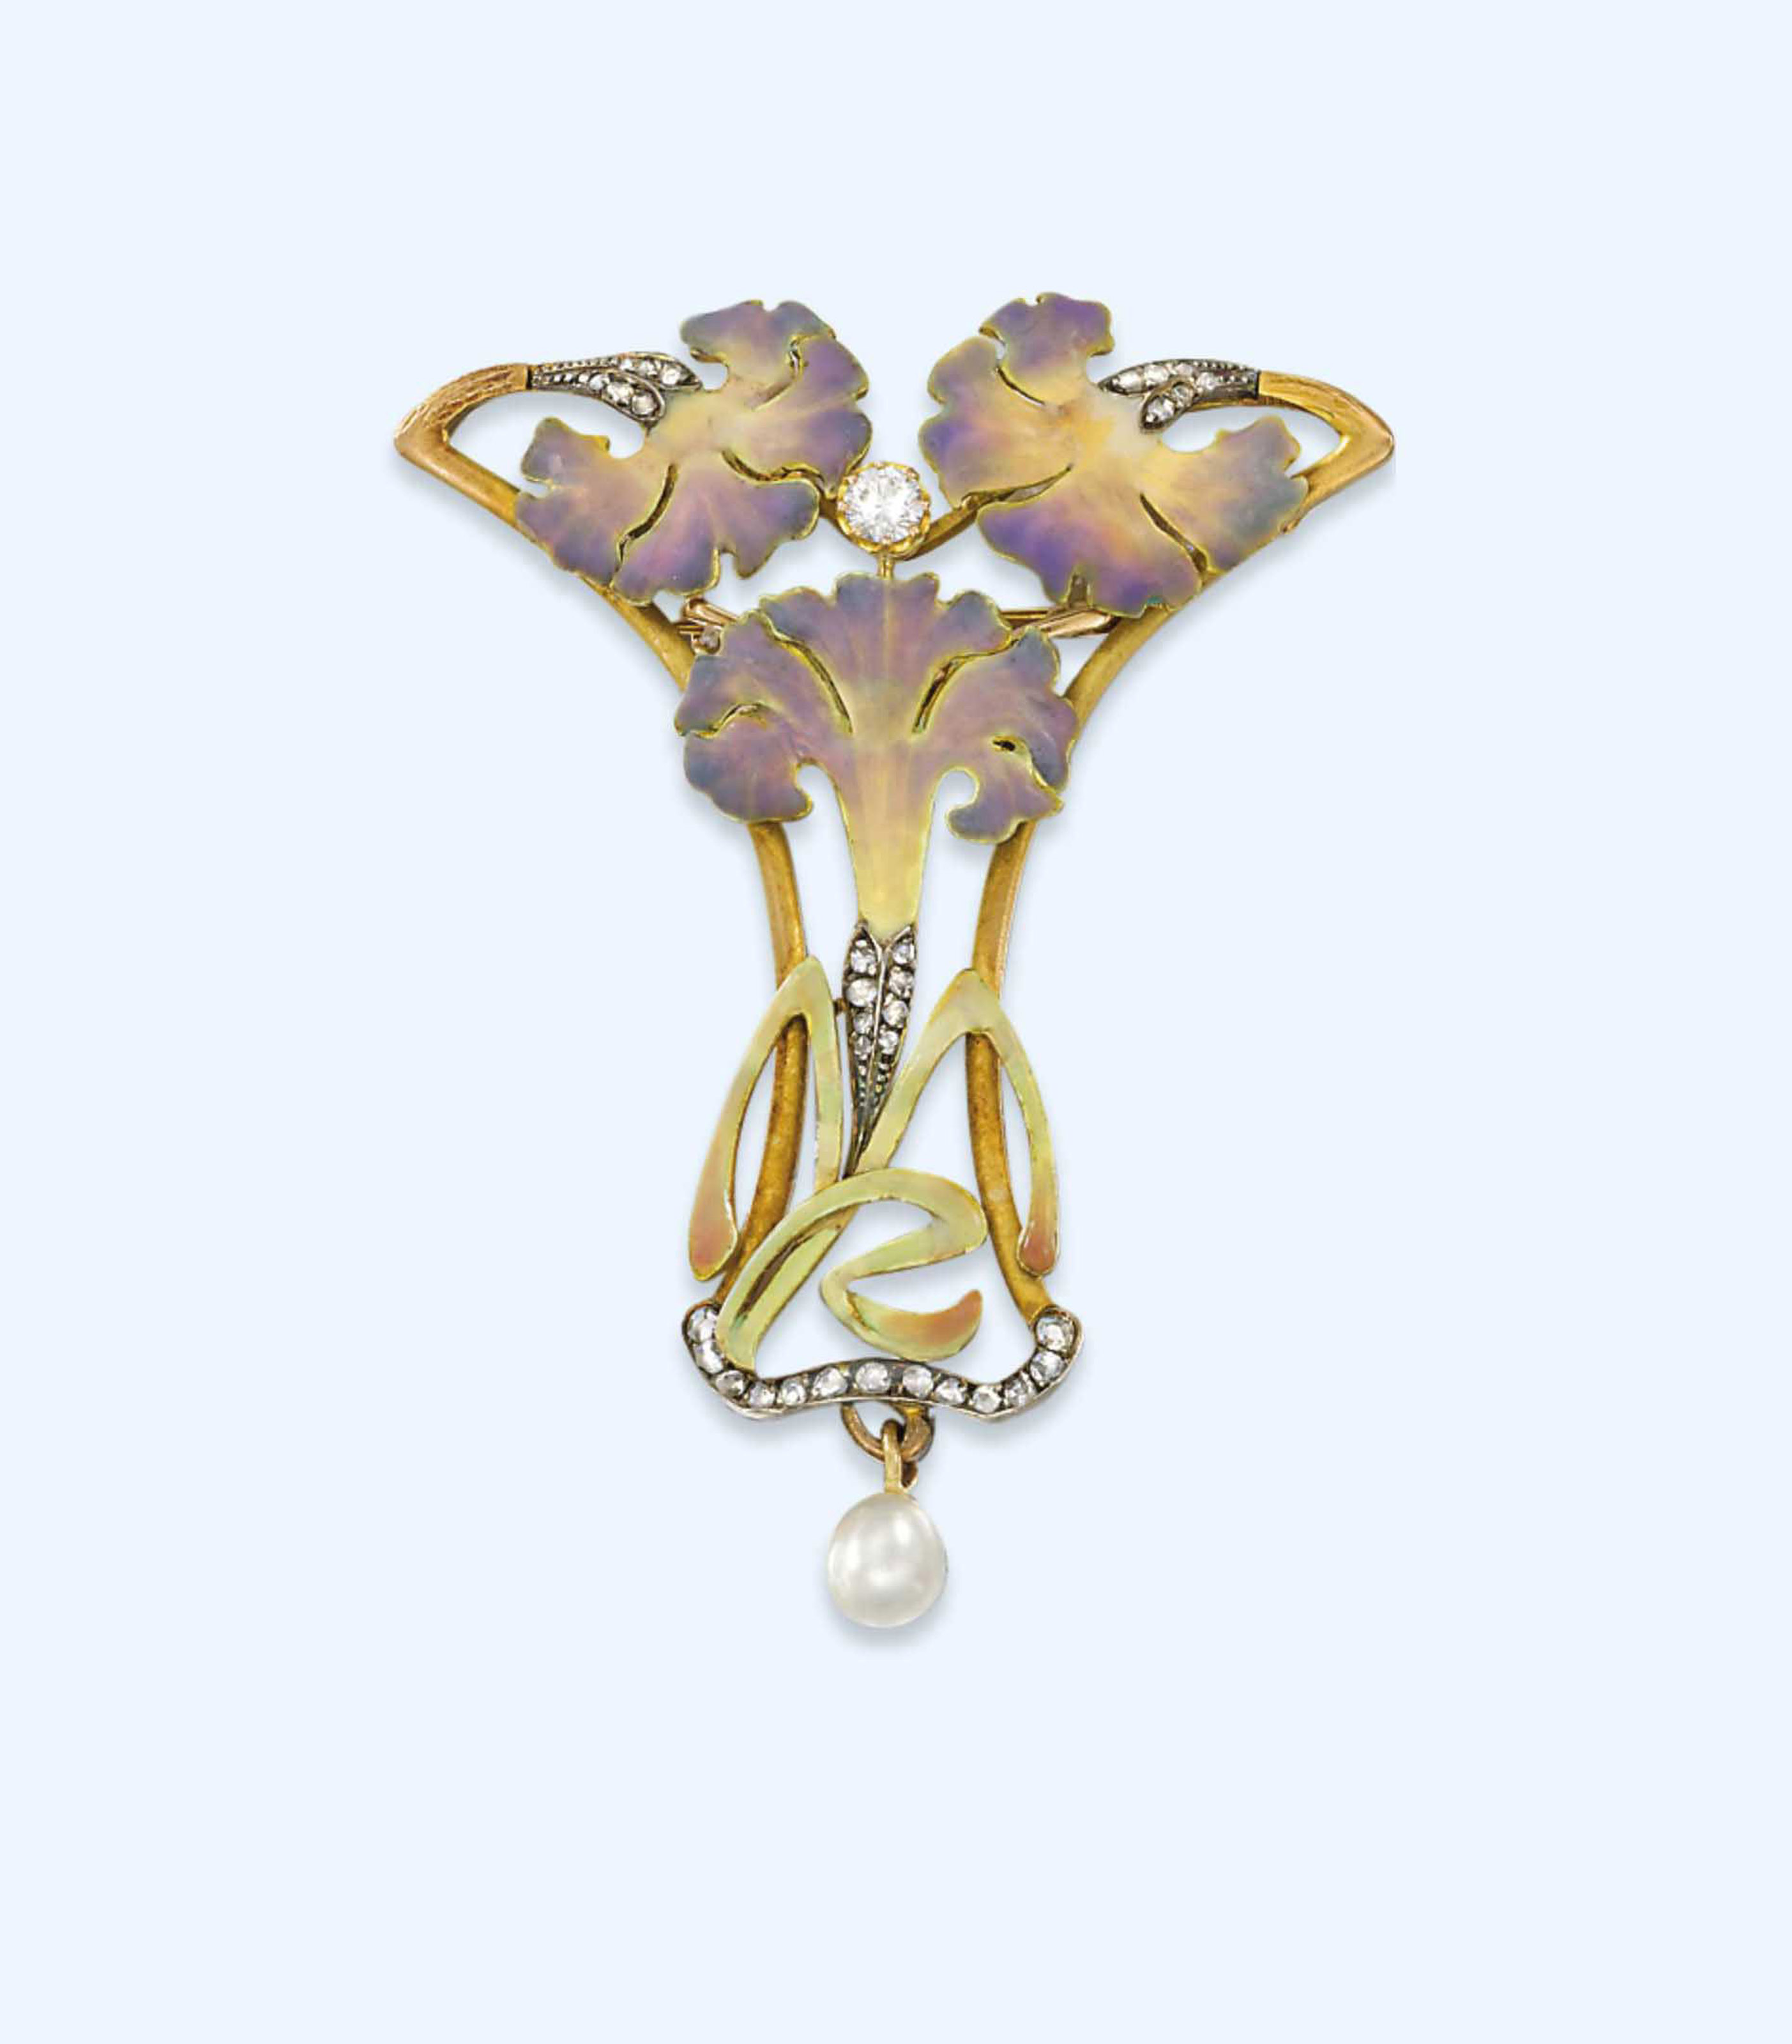 AN ART NOUVEAU DIAMOND-SET ENAMEL AND PEARL PENDANT, BY LUIS MASRIERA